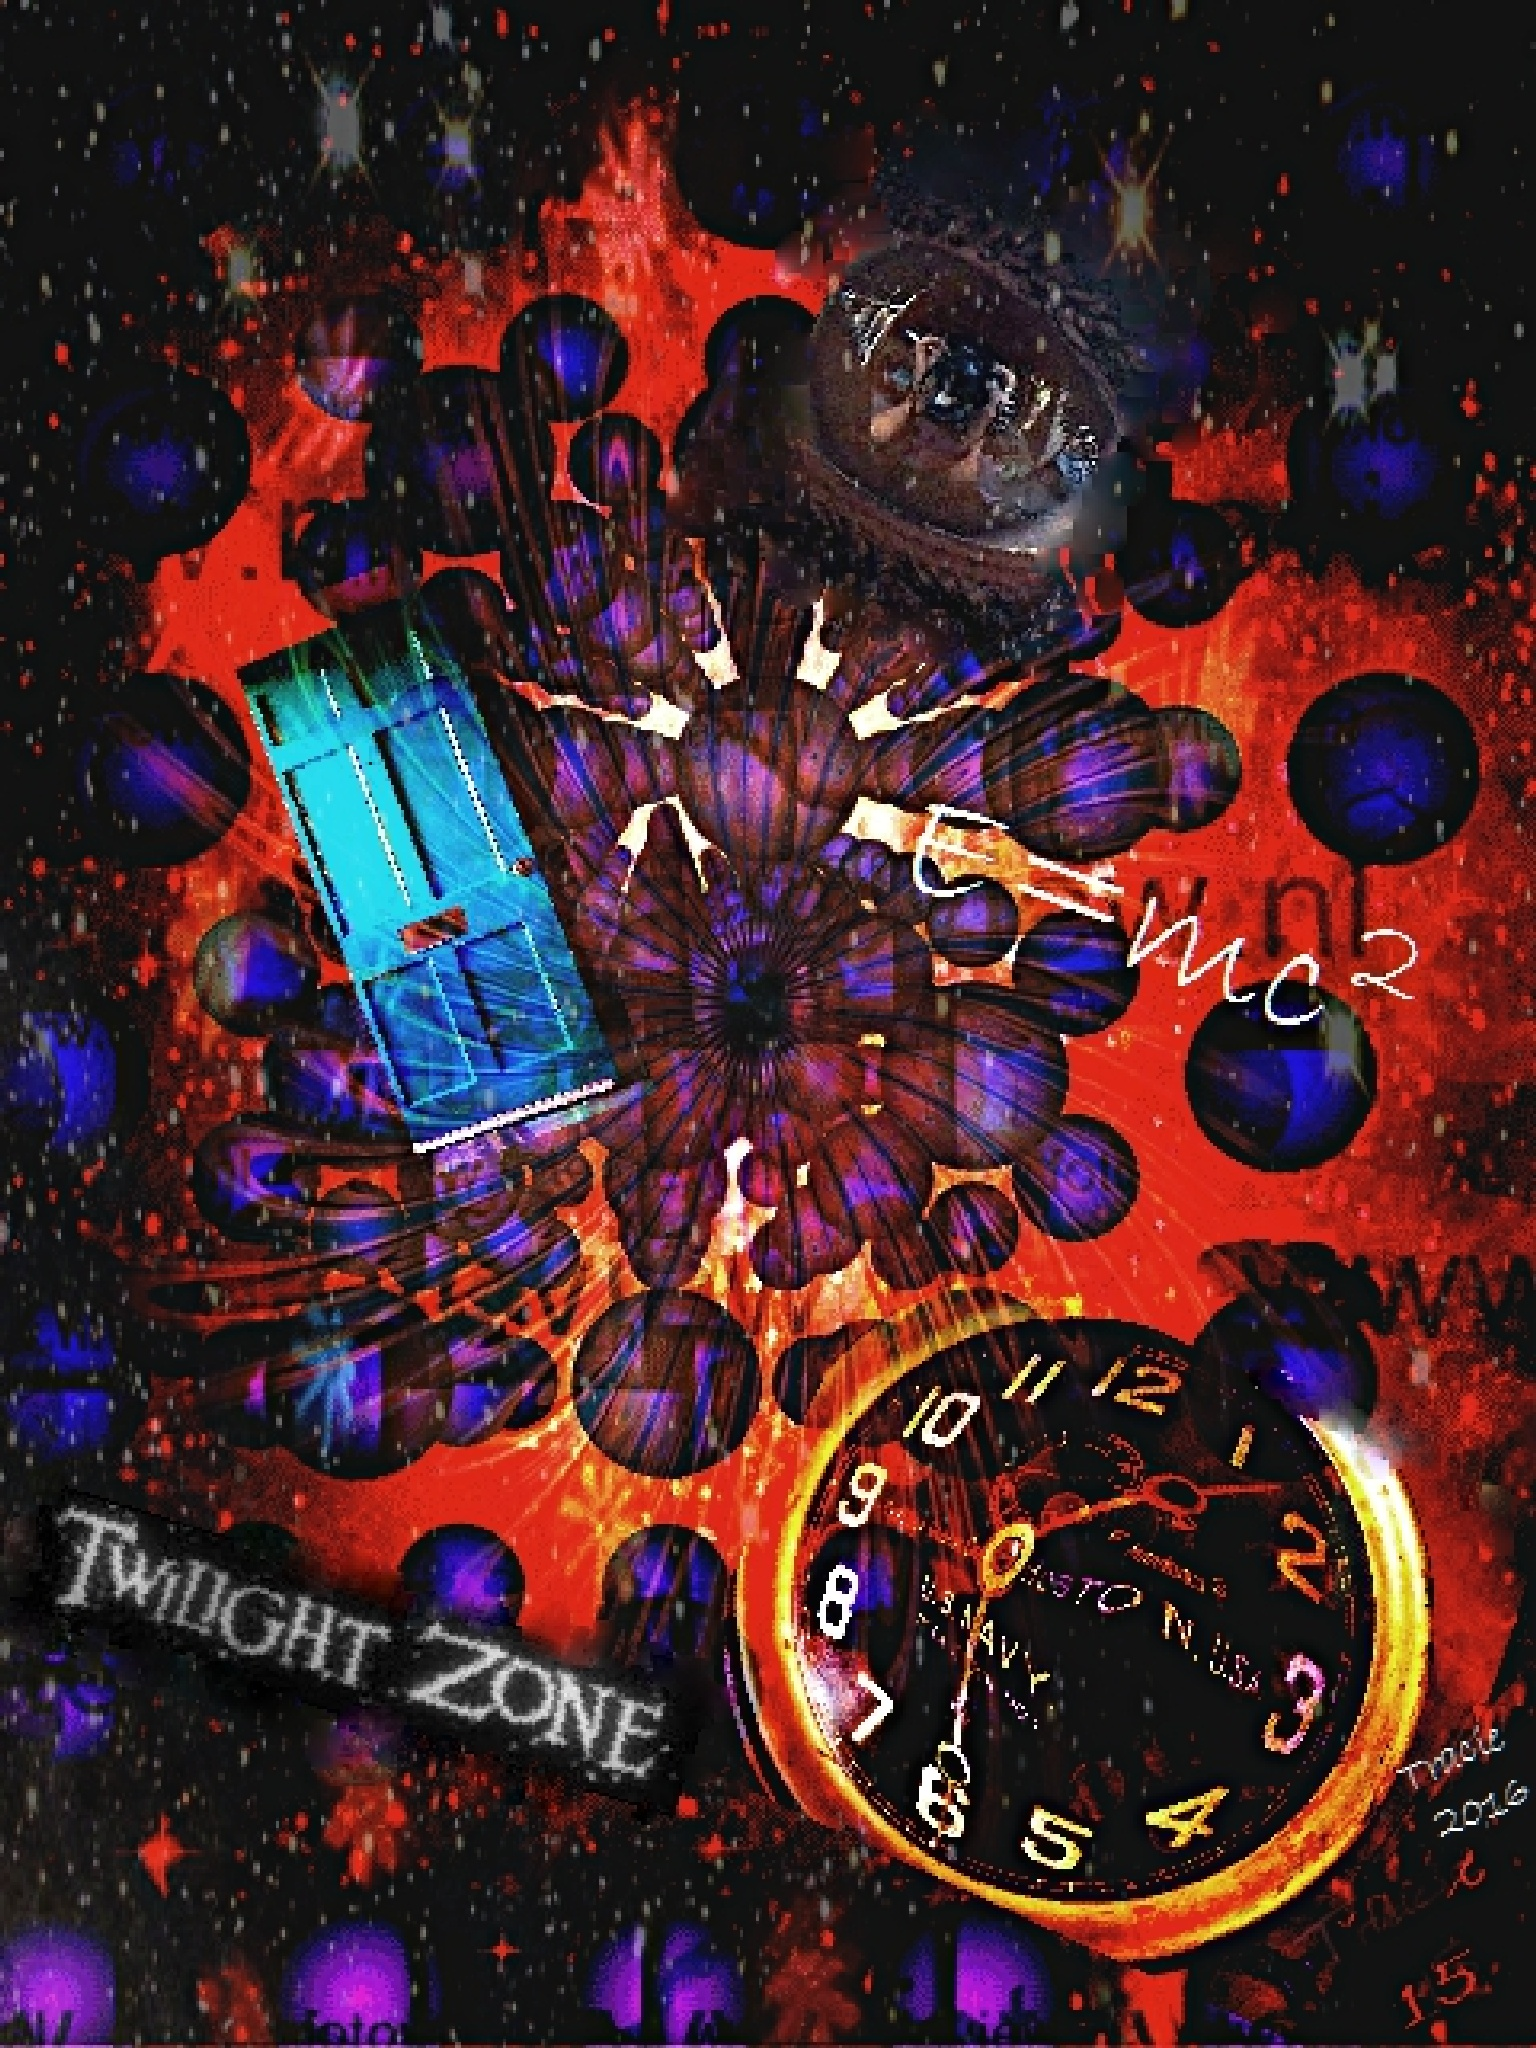 The Twilight Zone by Tracie